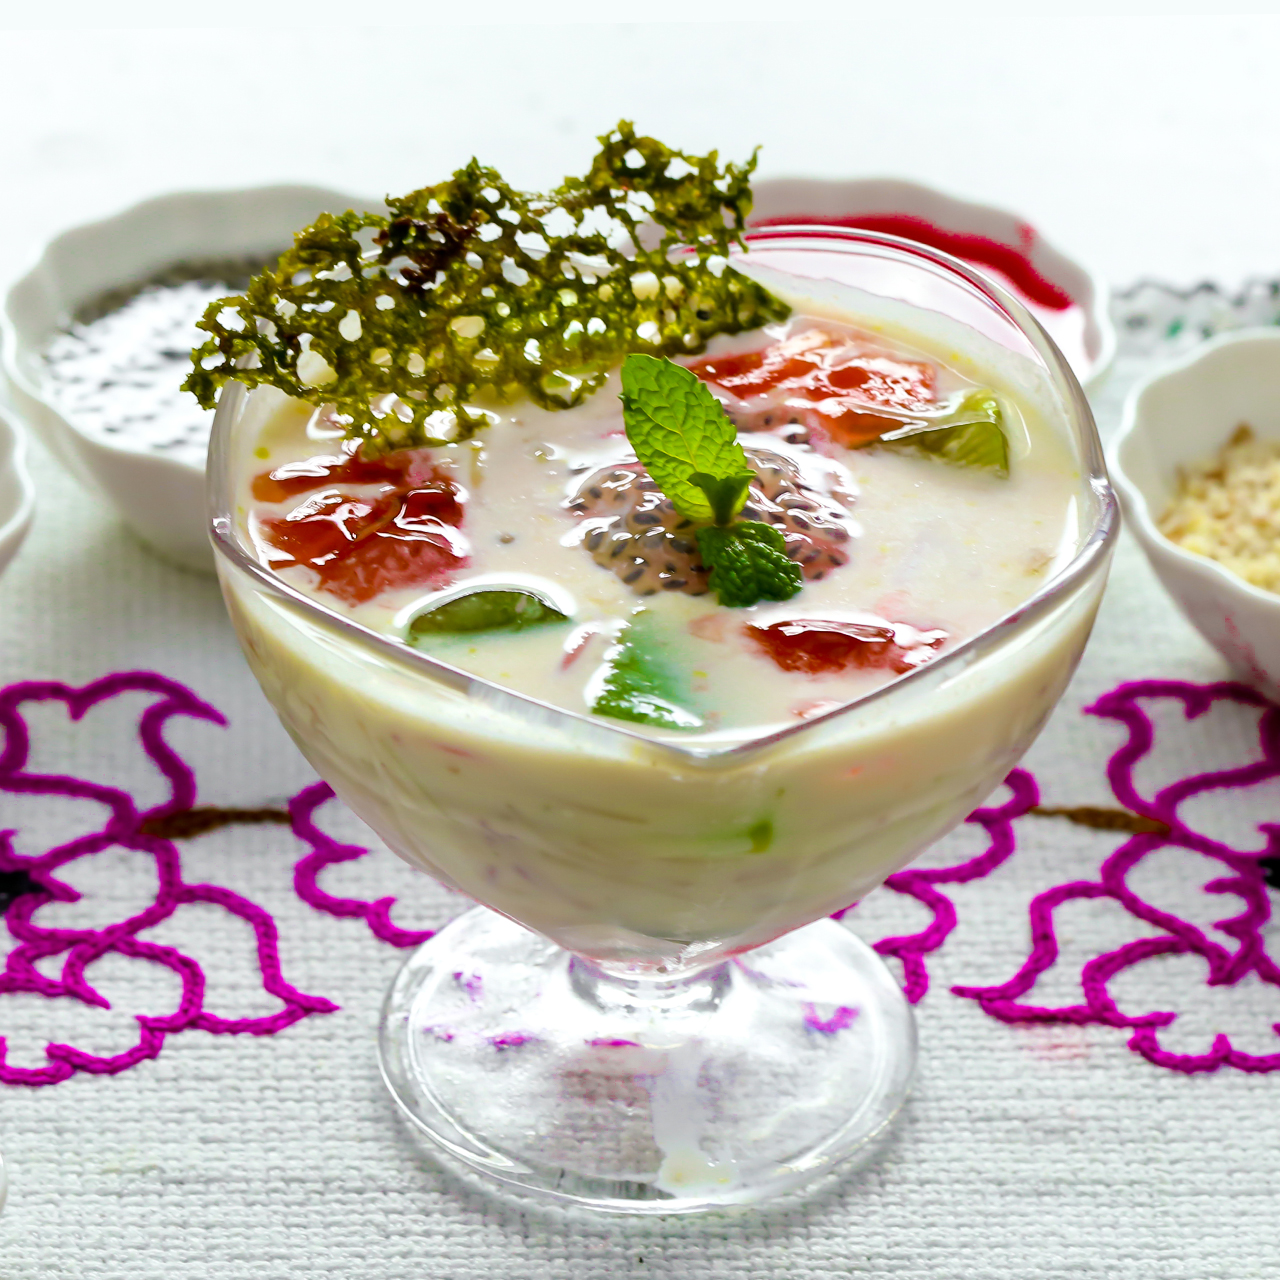 Home Made Falooda